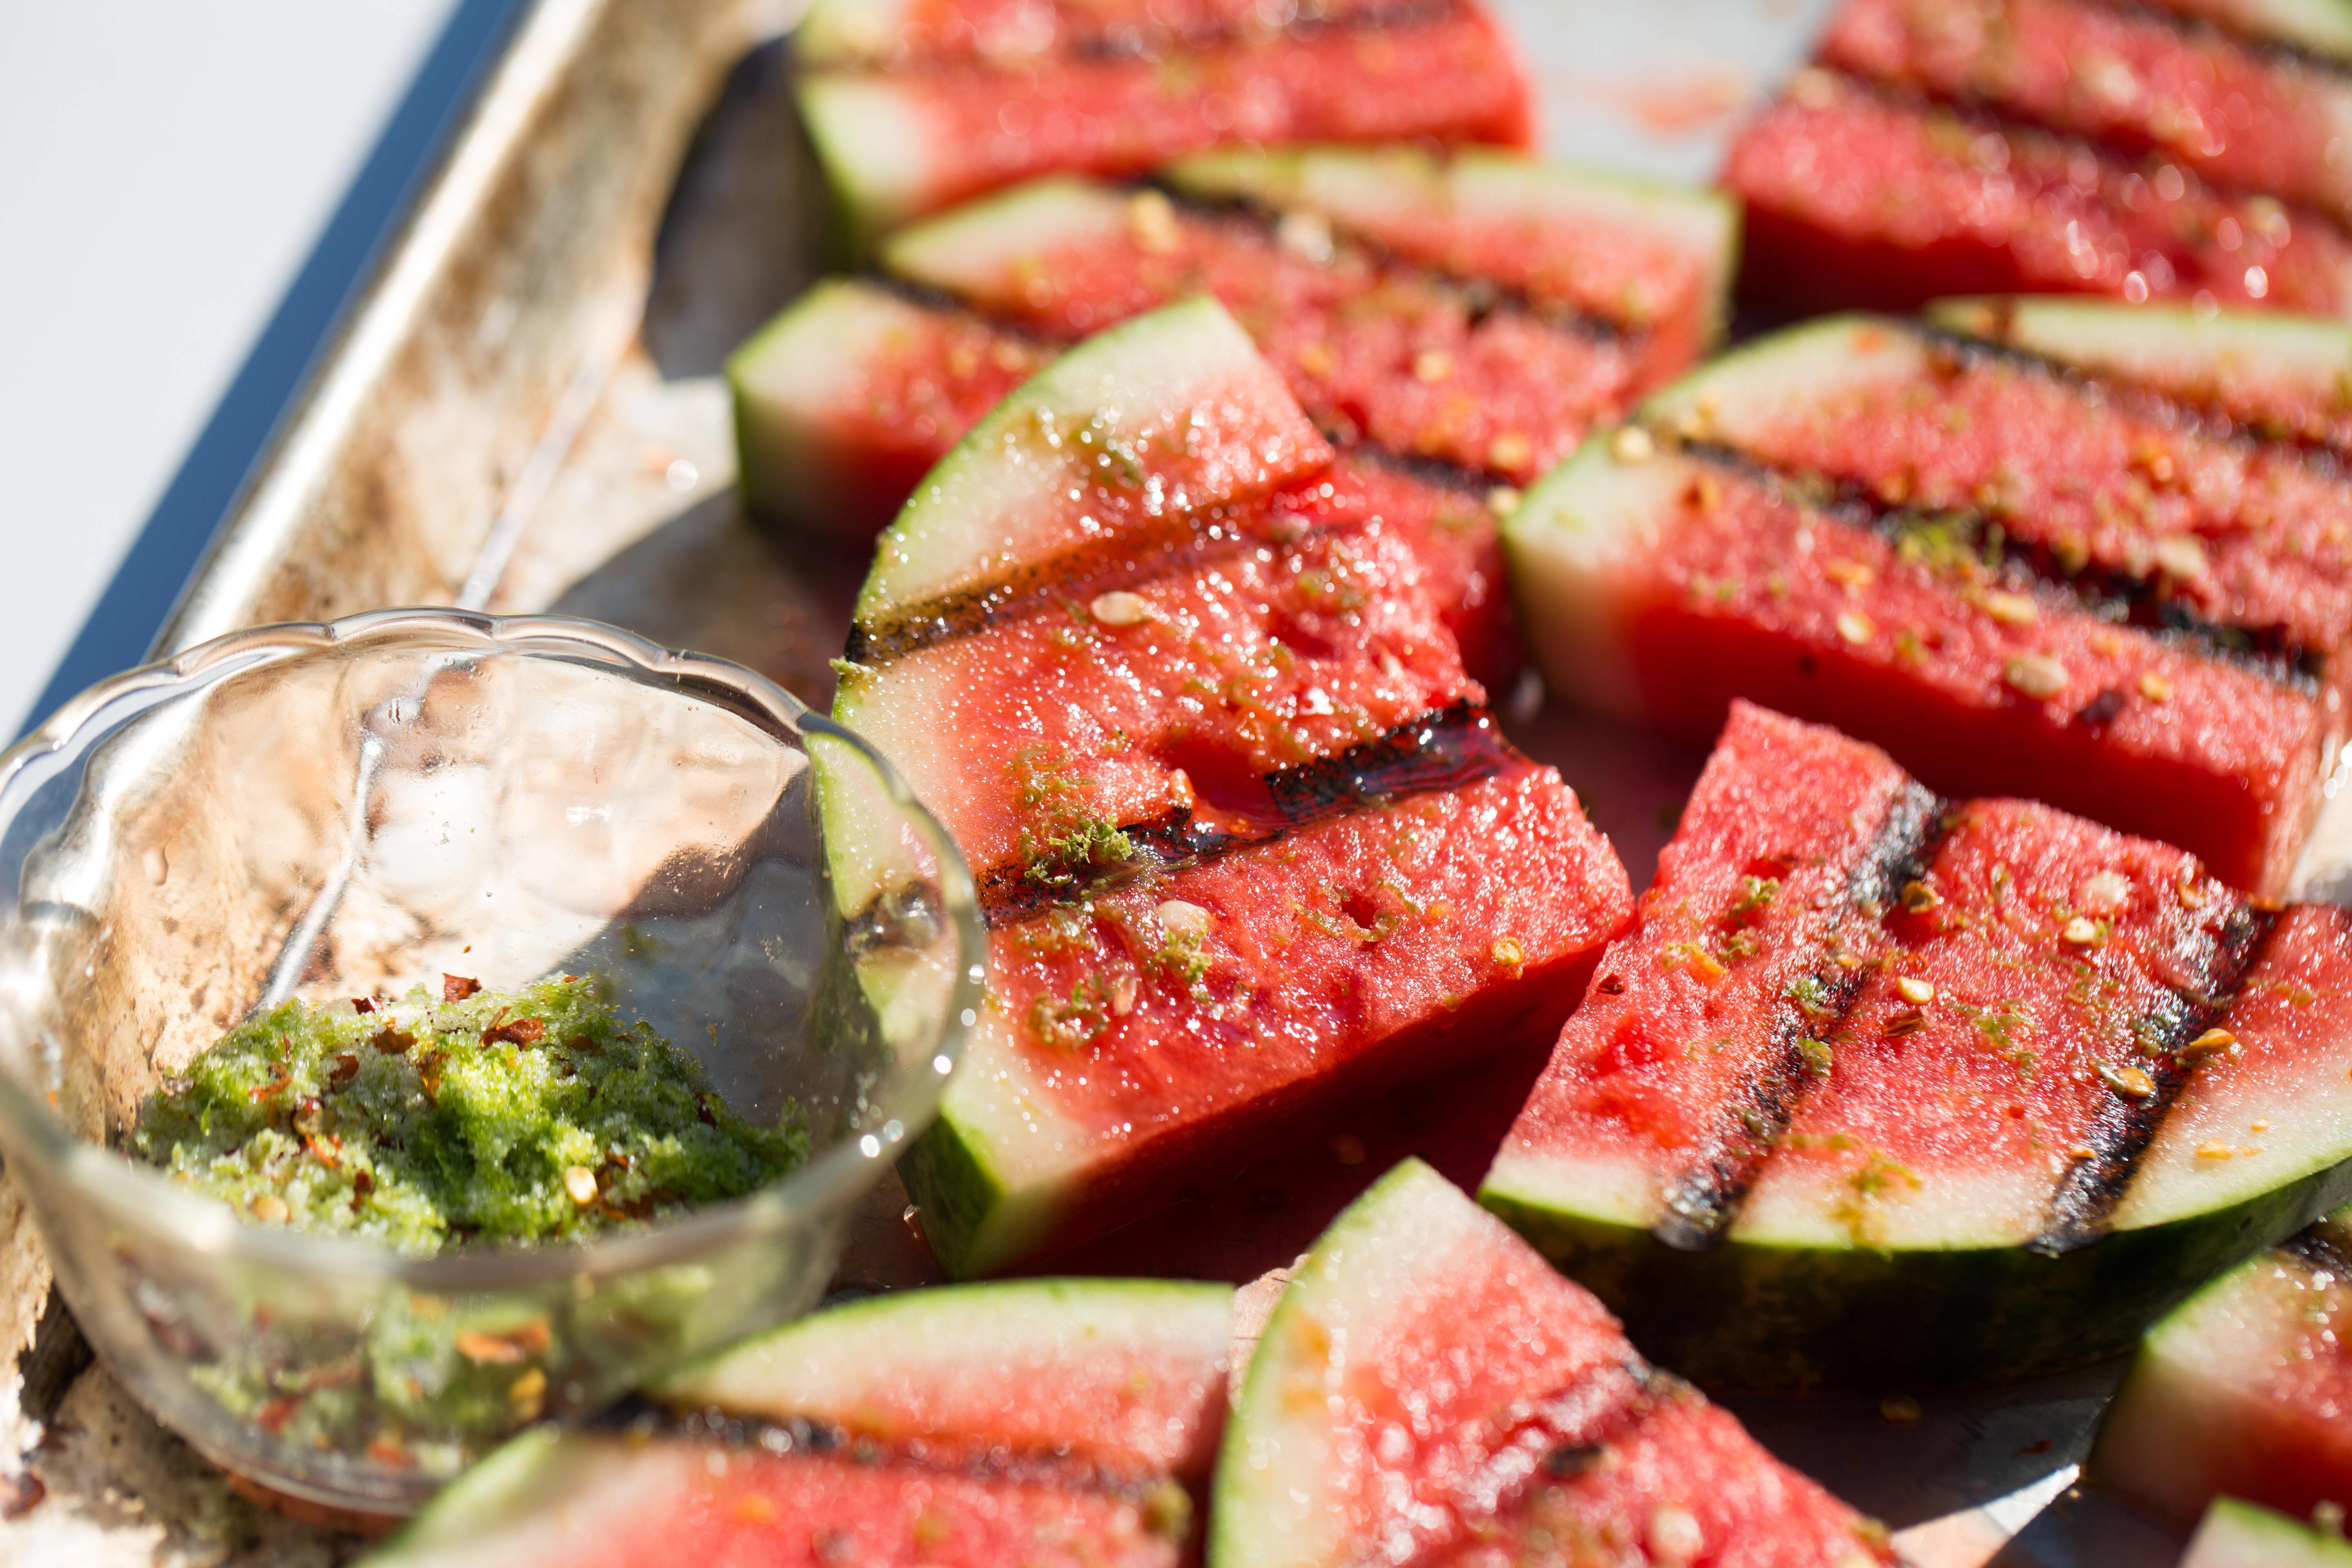 How To Grill Watermelon: gallery image 4